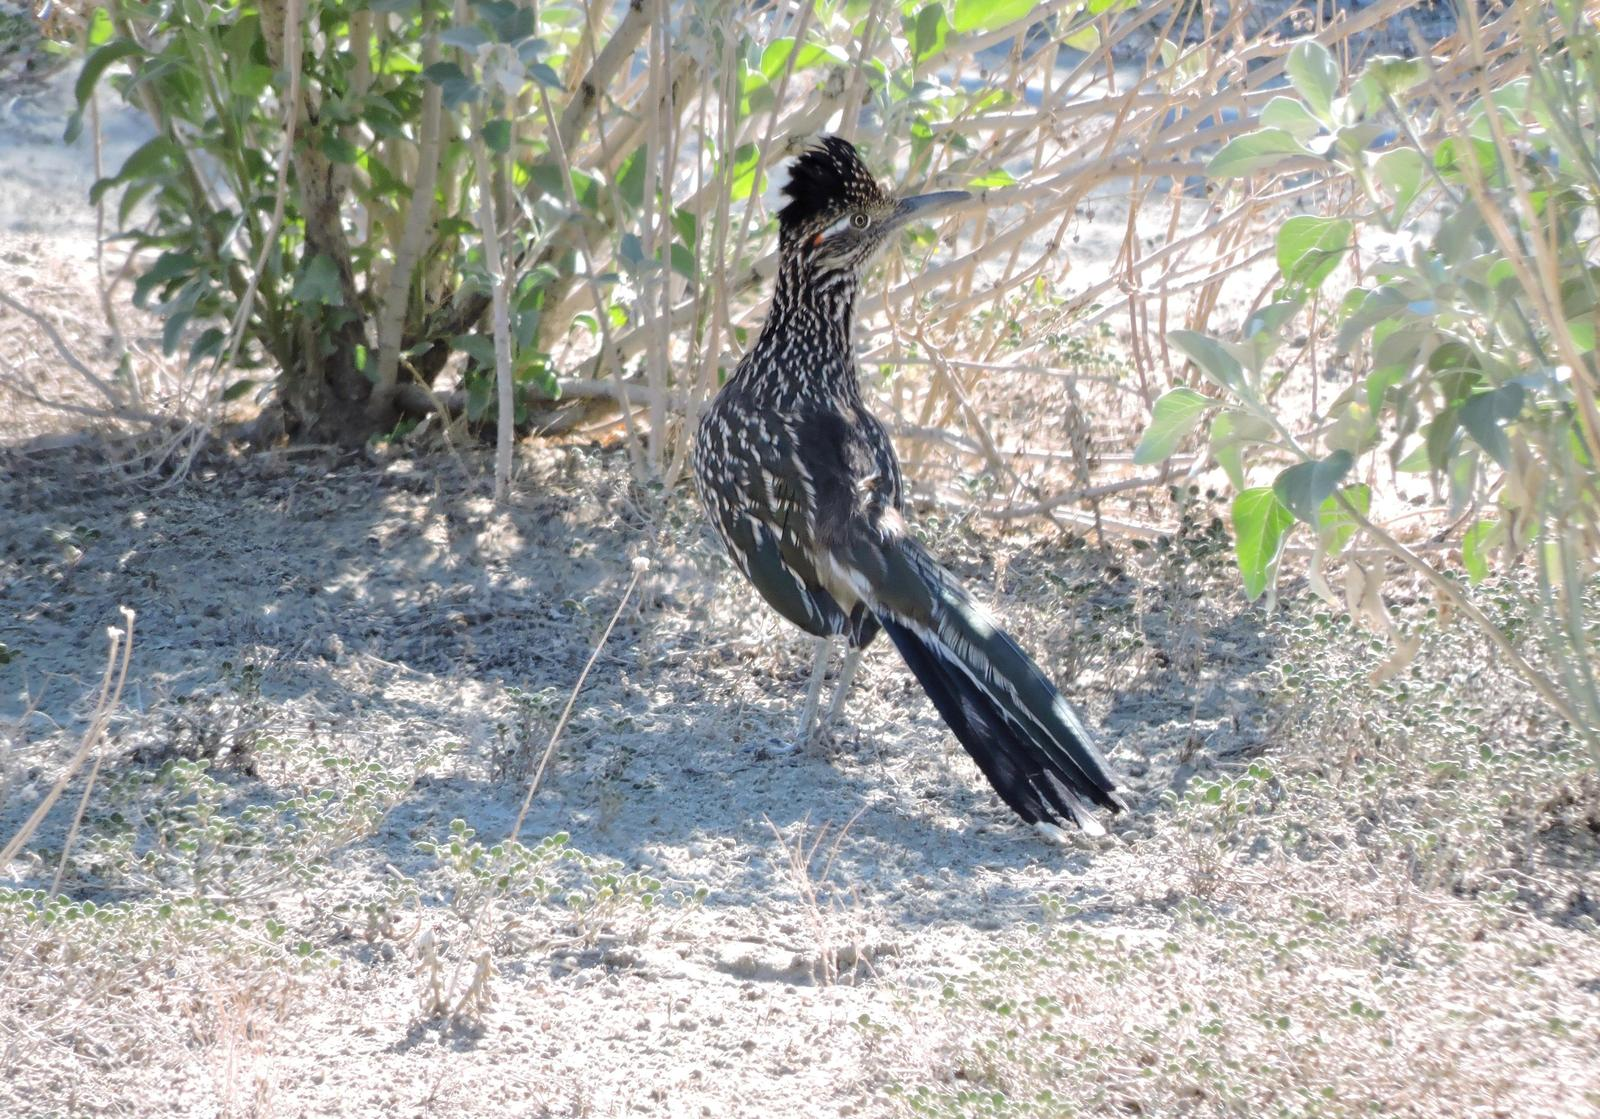 Greater Roadrunner Photo by Yvonne Burch-Hartley